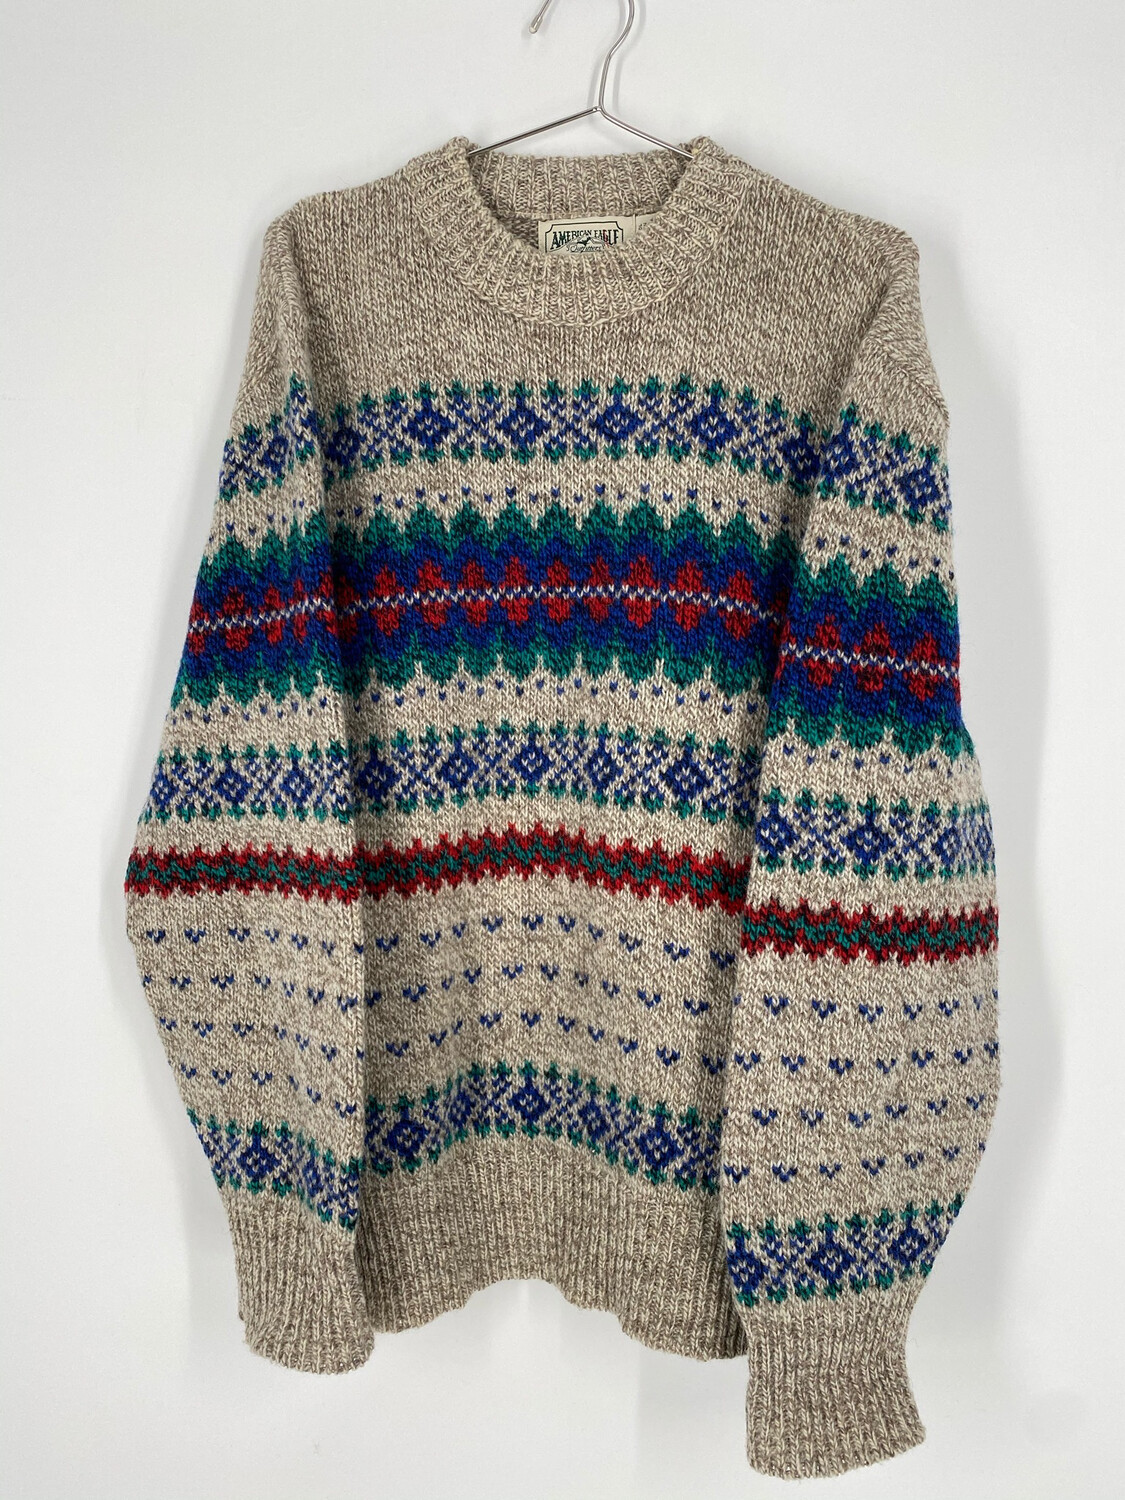 American Eagle Outfitters Vintage Wool Printed Sweater Size L